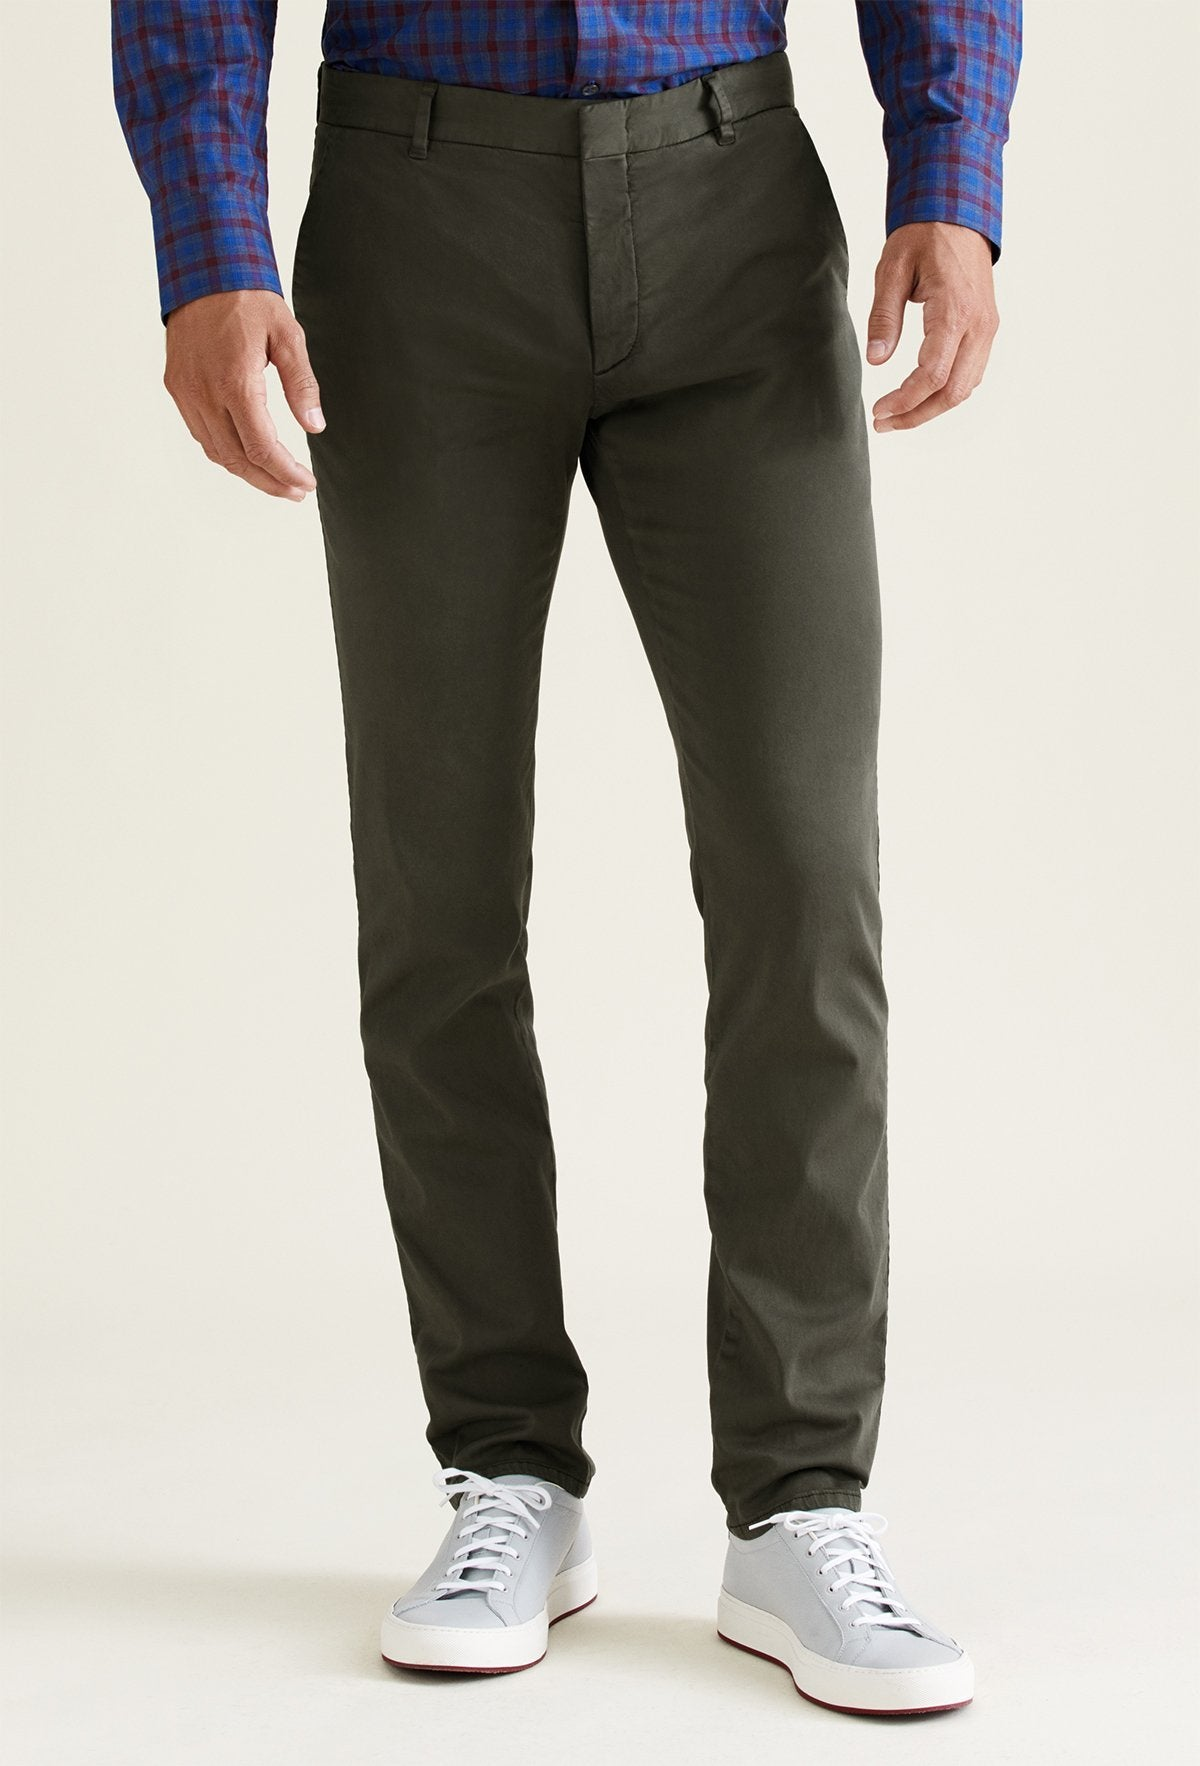 dark olive chino pants for men